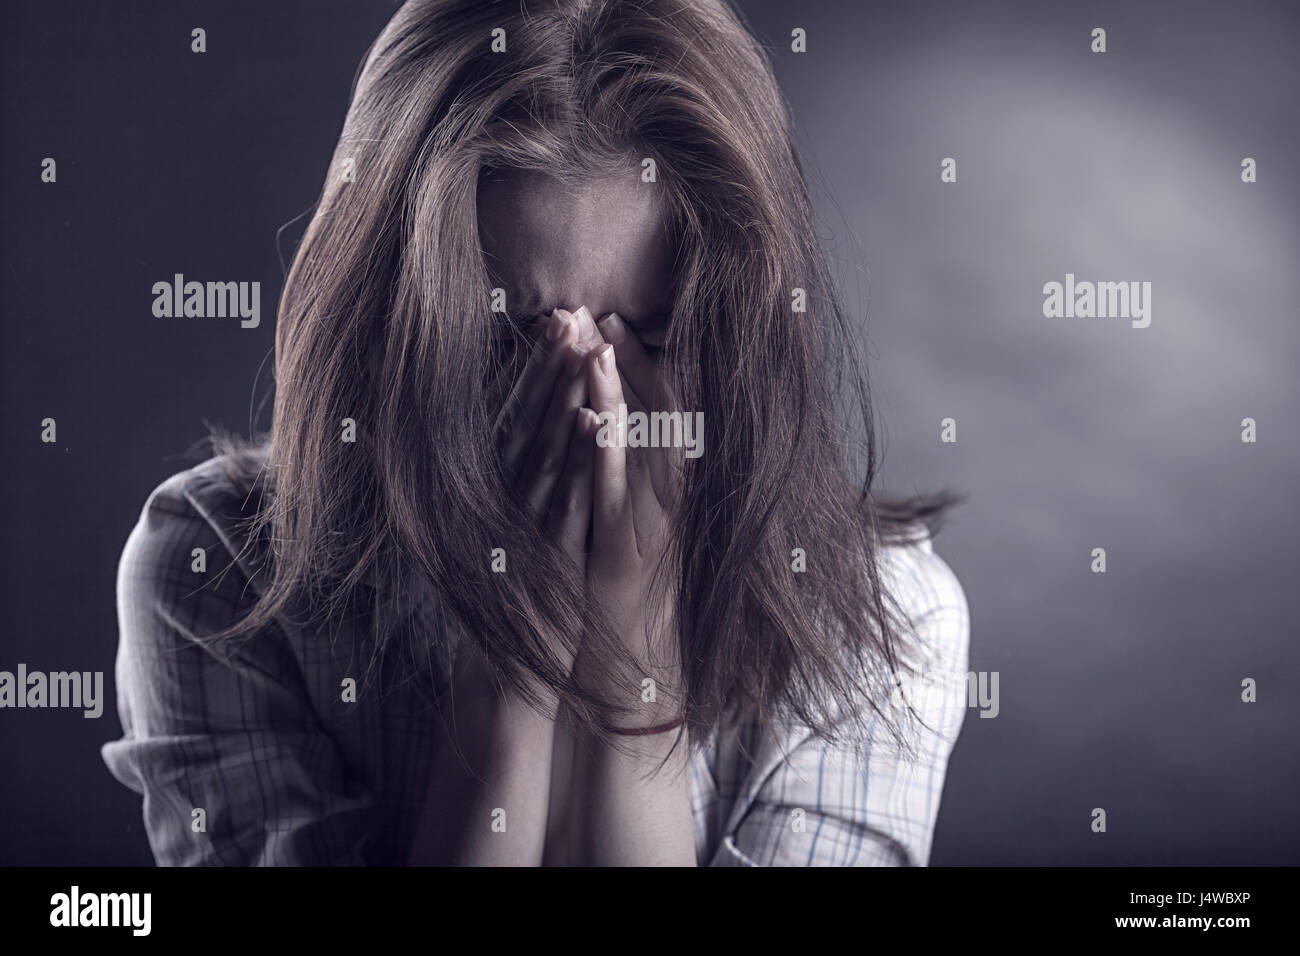 Young woman crying face in her hands on a dark background - Stock Image